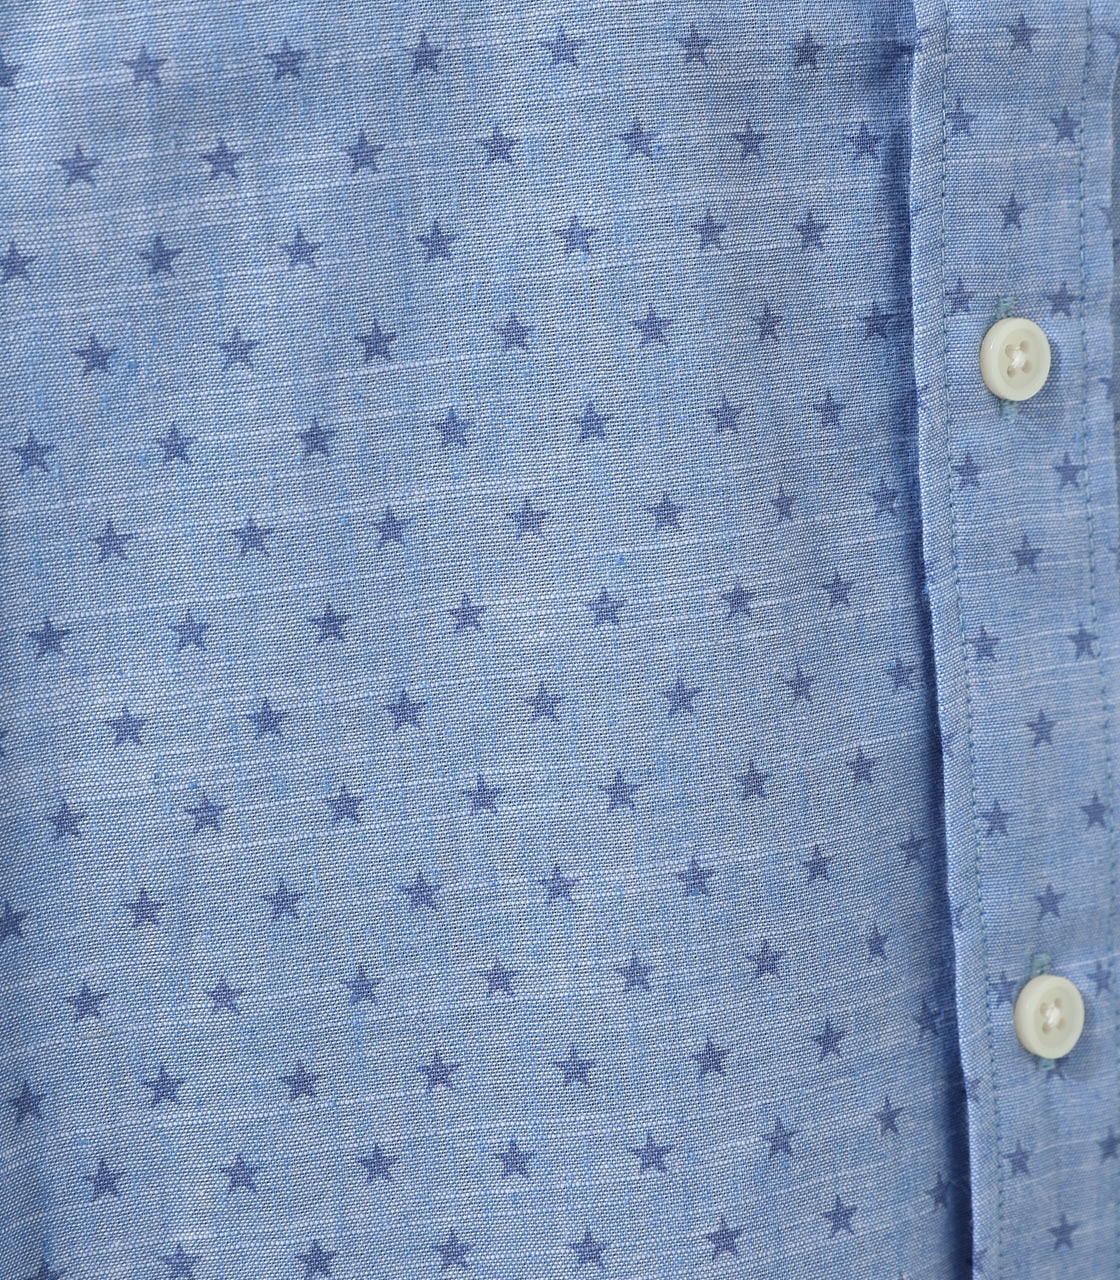 【AZUL BY MOUSSY】LINEN STAR PATTERN SHIRT 詳細画像 柄BLU 9